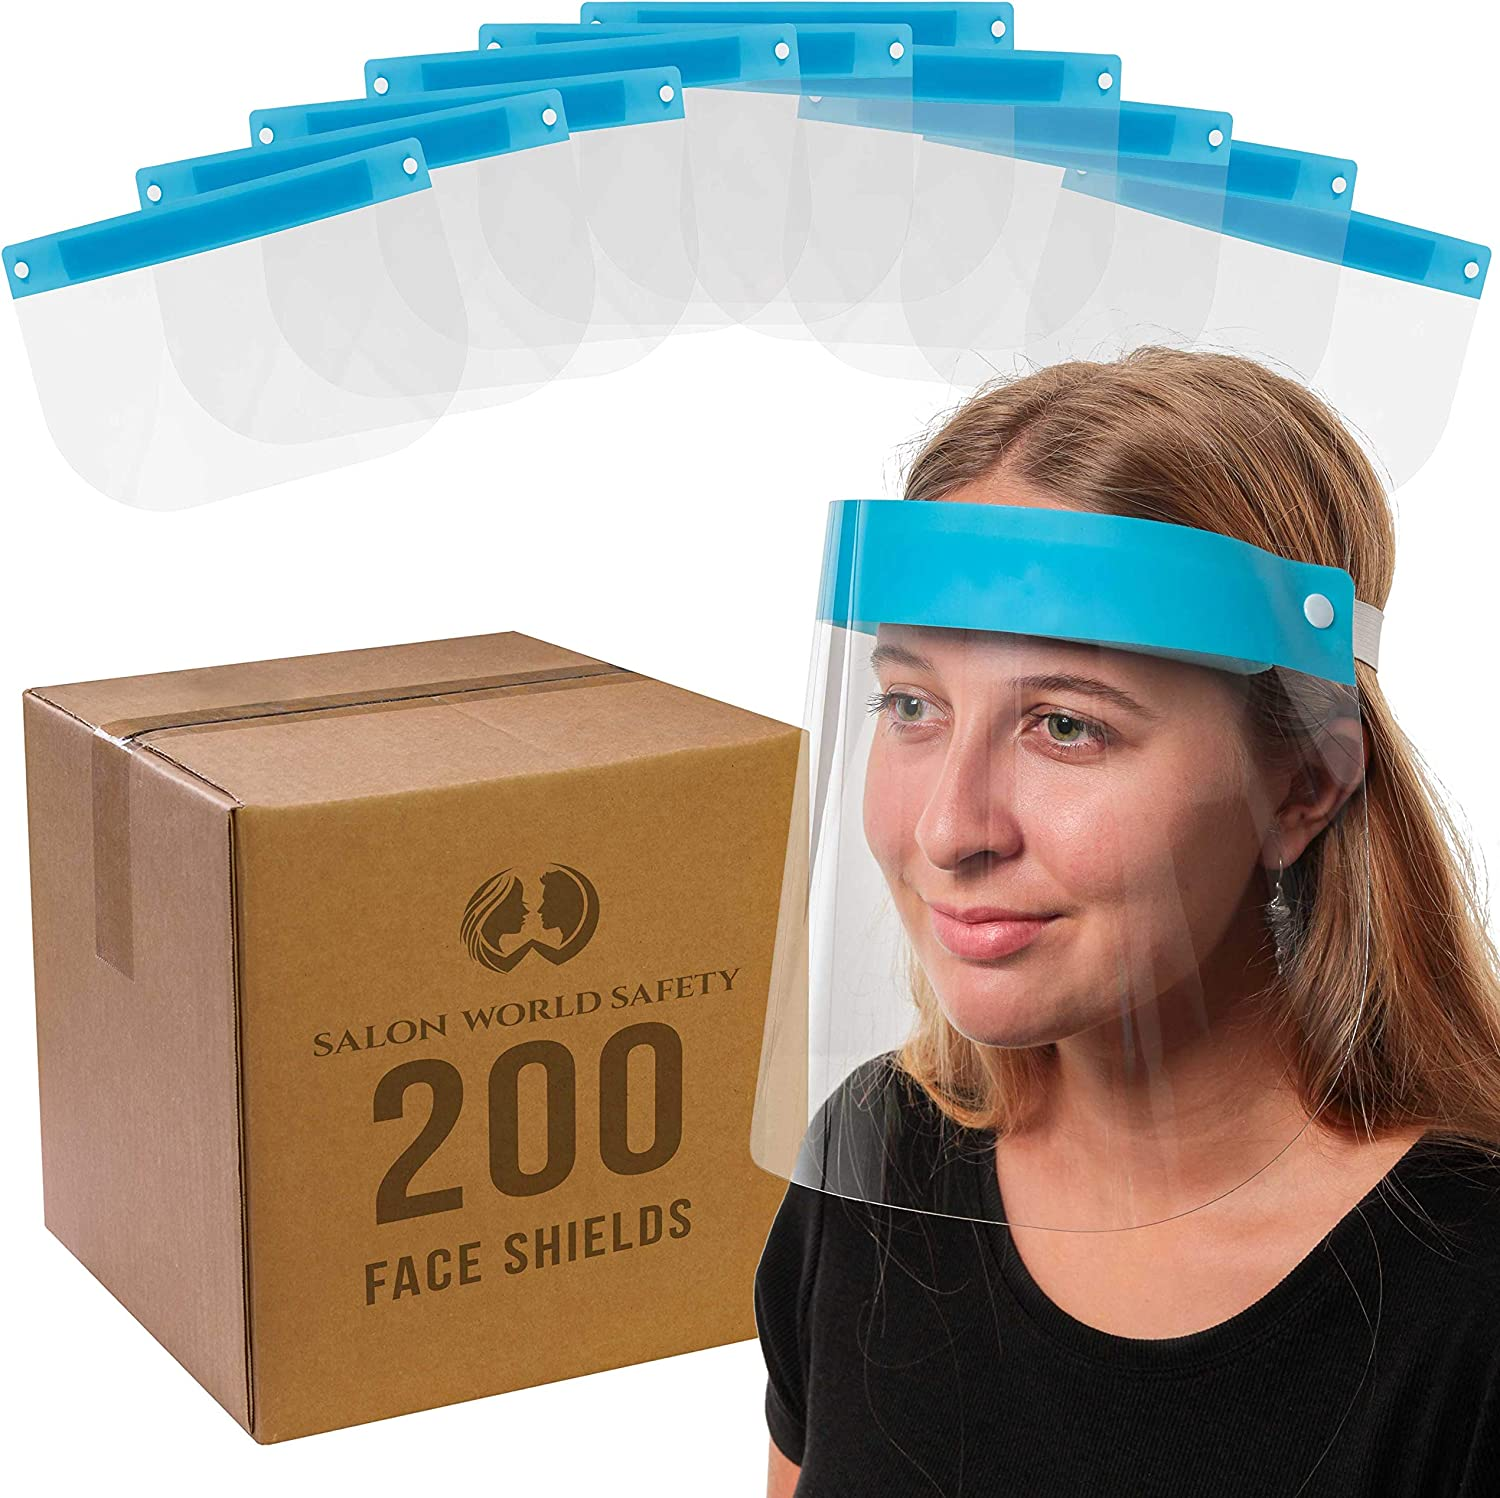 Salon World Safety 200 Face Shields (20 Packs of 10) - Ultra Clear Protective Full Face Shields to Protect Eyes, Nose and Mouth - Anti-Fog PET Plastic, Elastic Headband - Sanitary Droplet Splash Guard